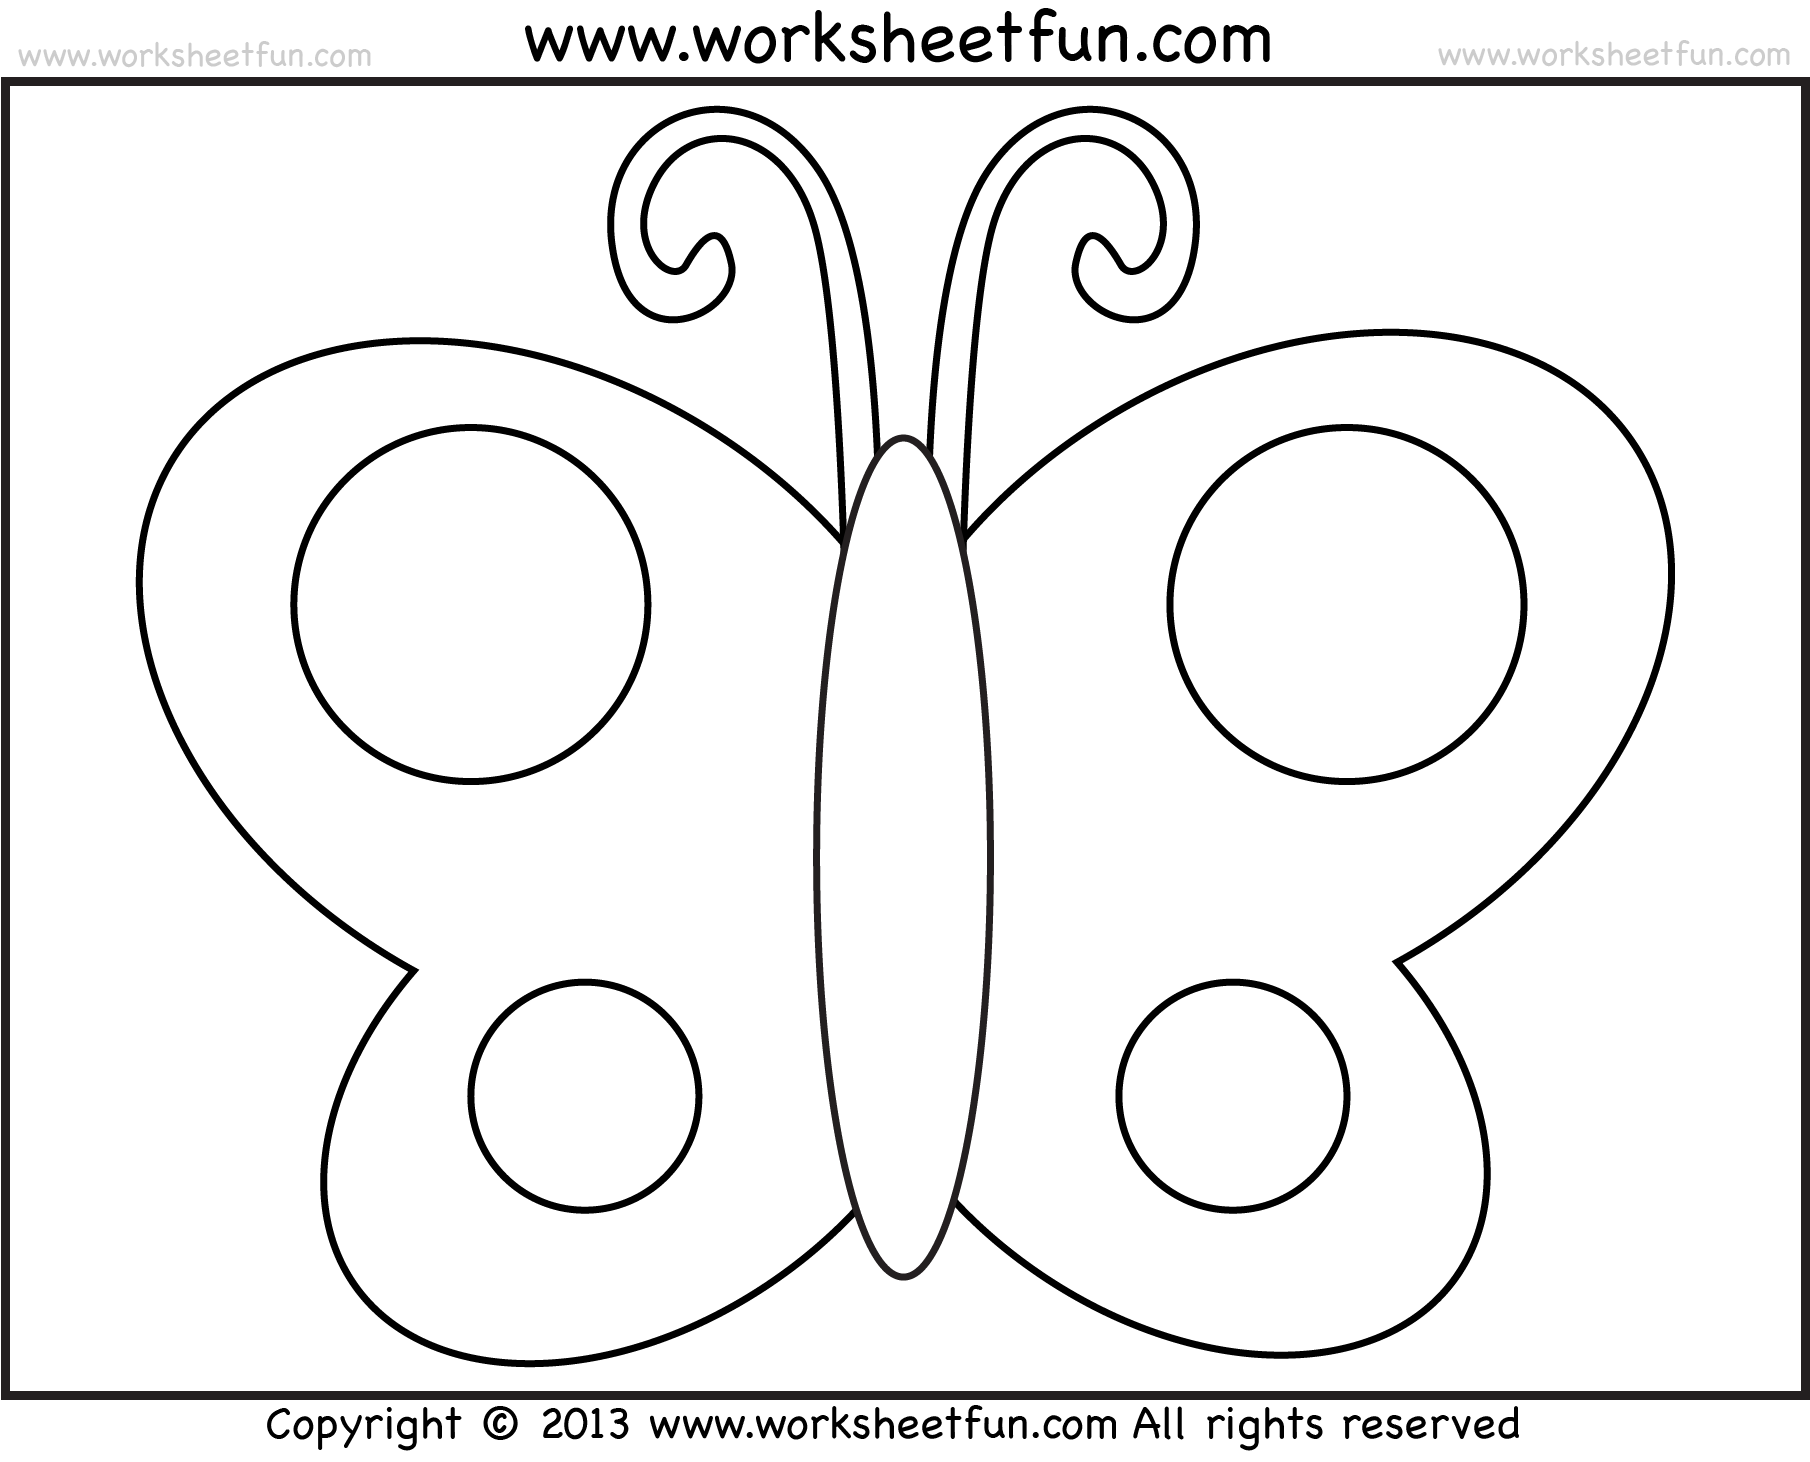 Free Printable Preschool Worksheets Age 4 and butterfly Tracing and Coloring 4 Preschool Worksheets Free